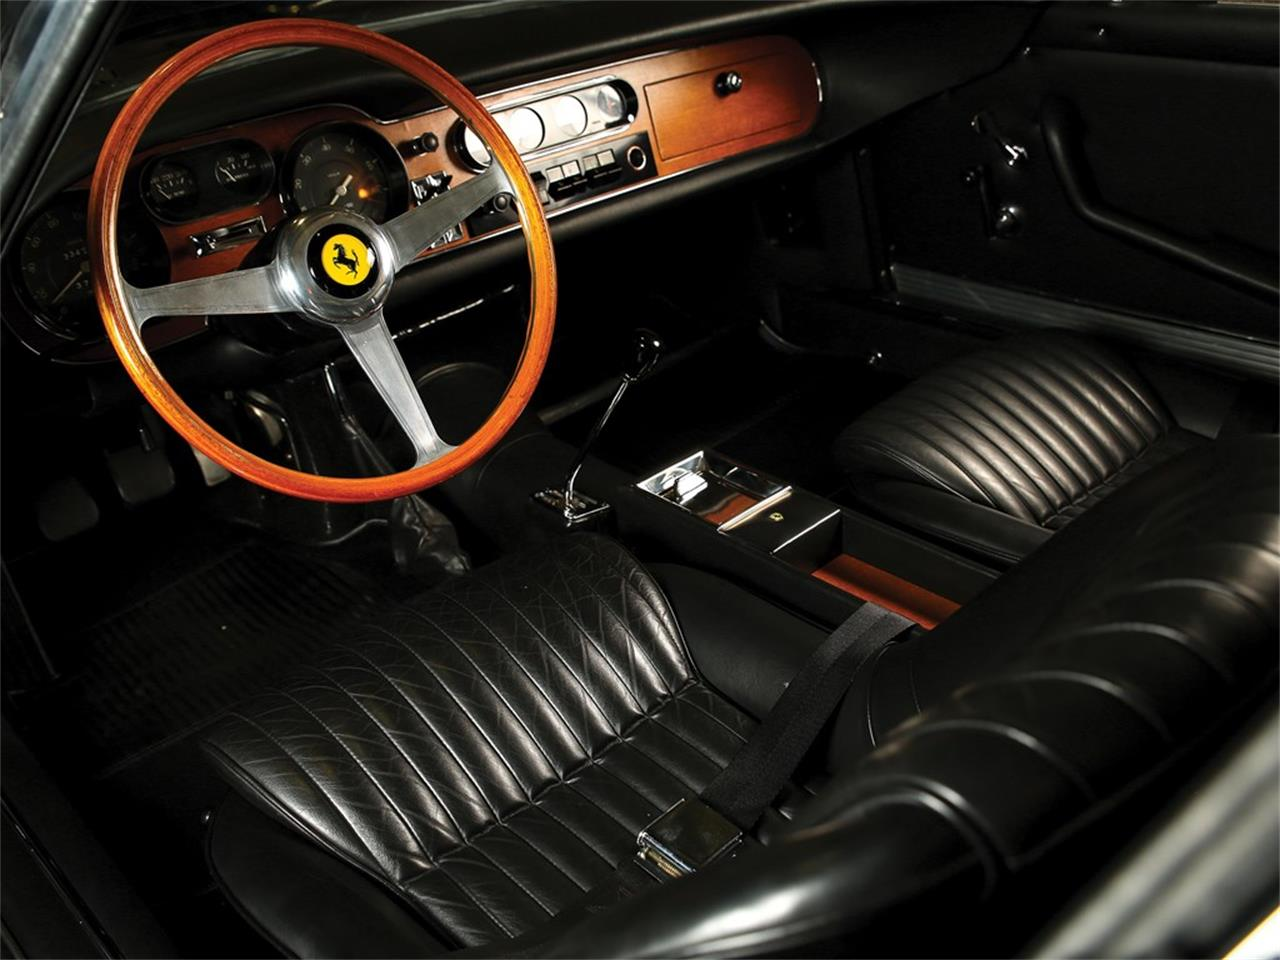 Large Picture of Classic 1966 Ferrari 275 GTB located in California Auction Vehicle Offered by RM Sotheby's - Q20Z